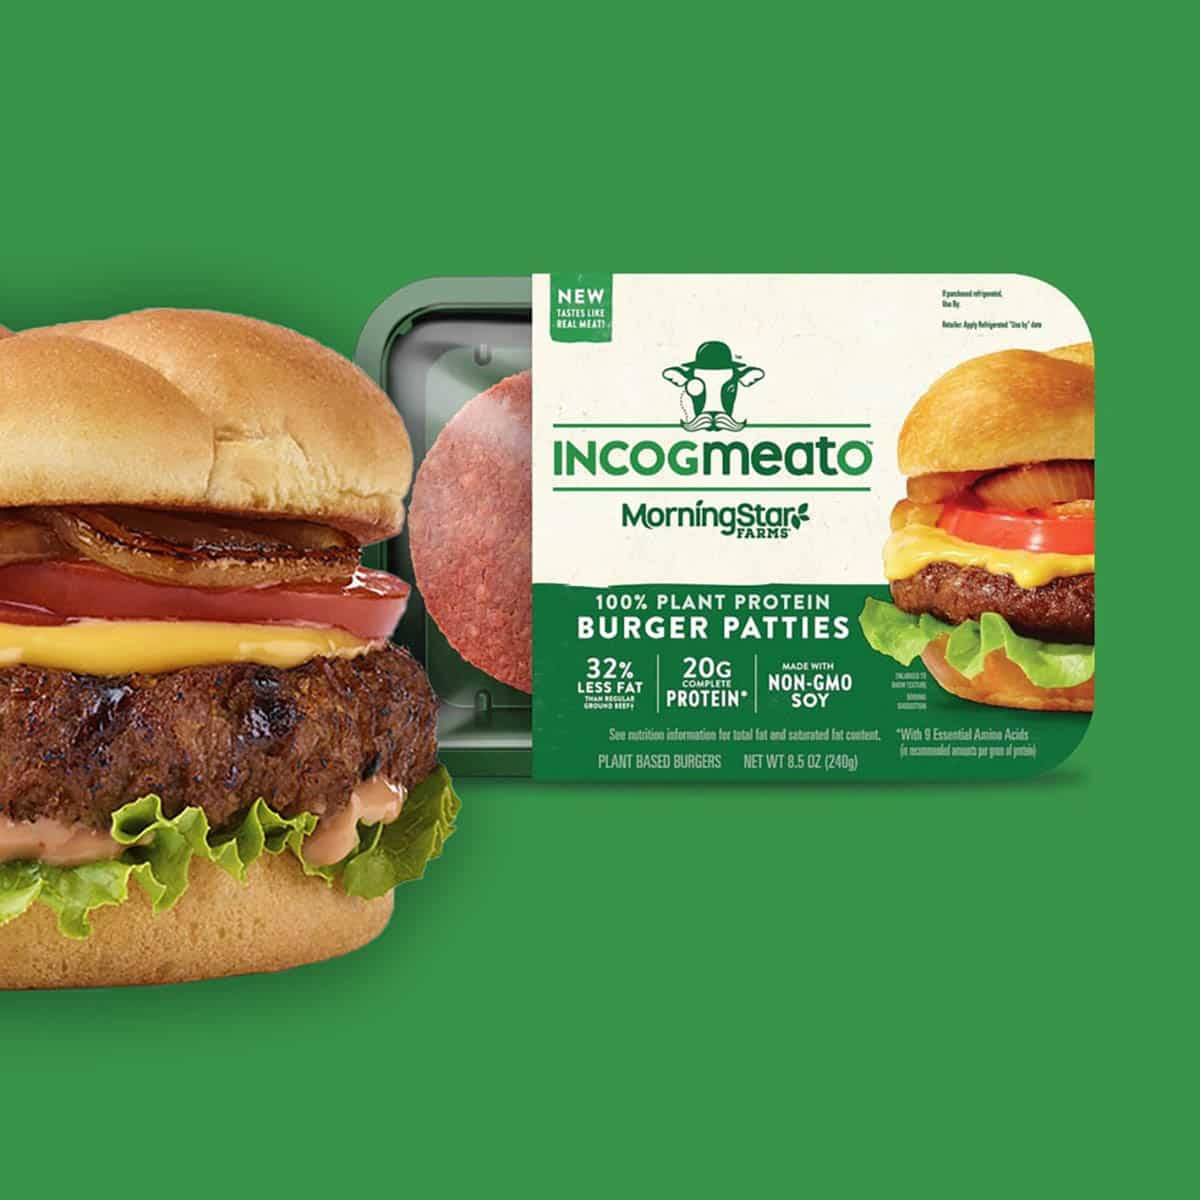 vegan burger on a green background next to a package of Incogmeato patties